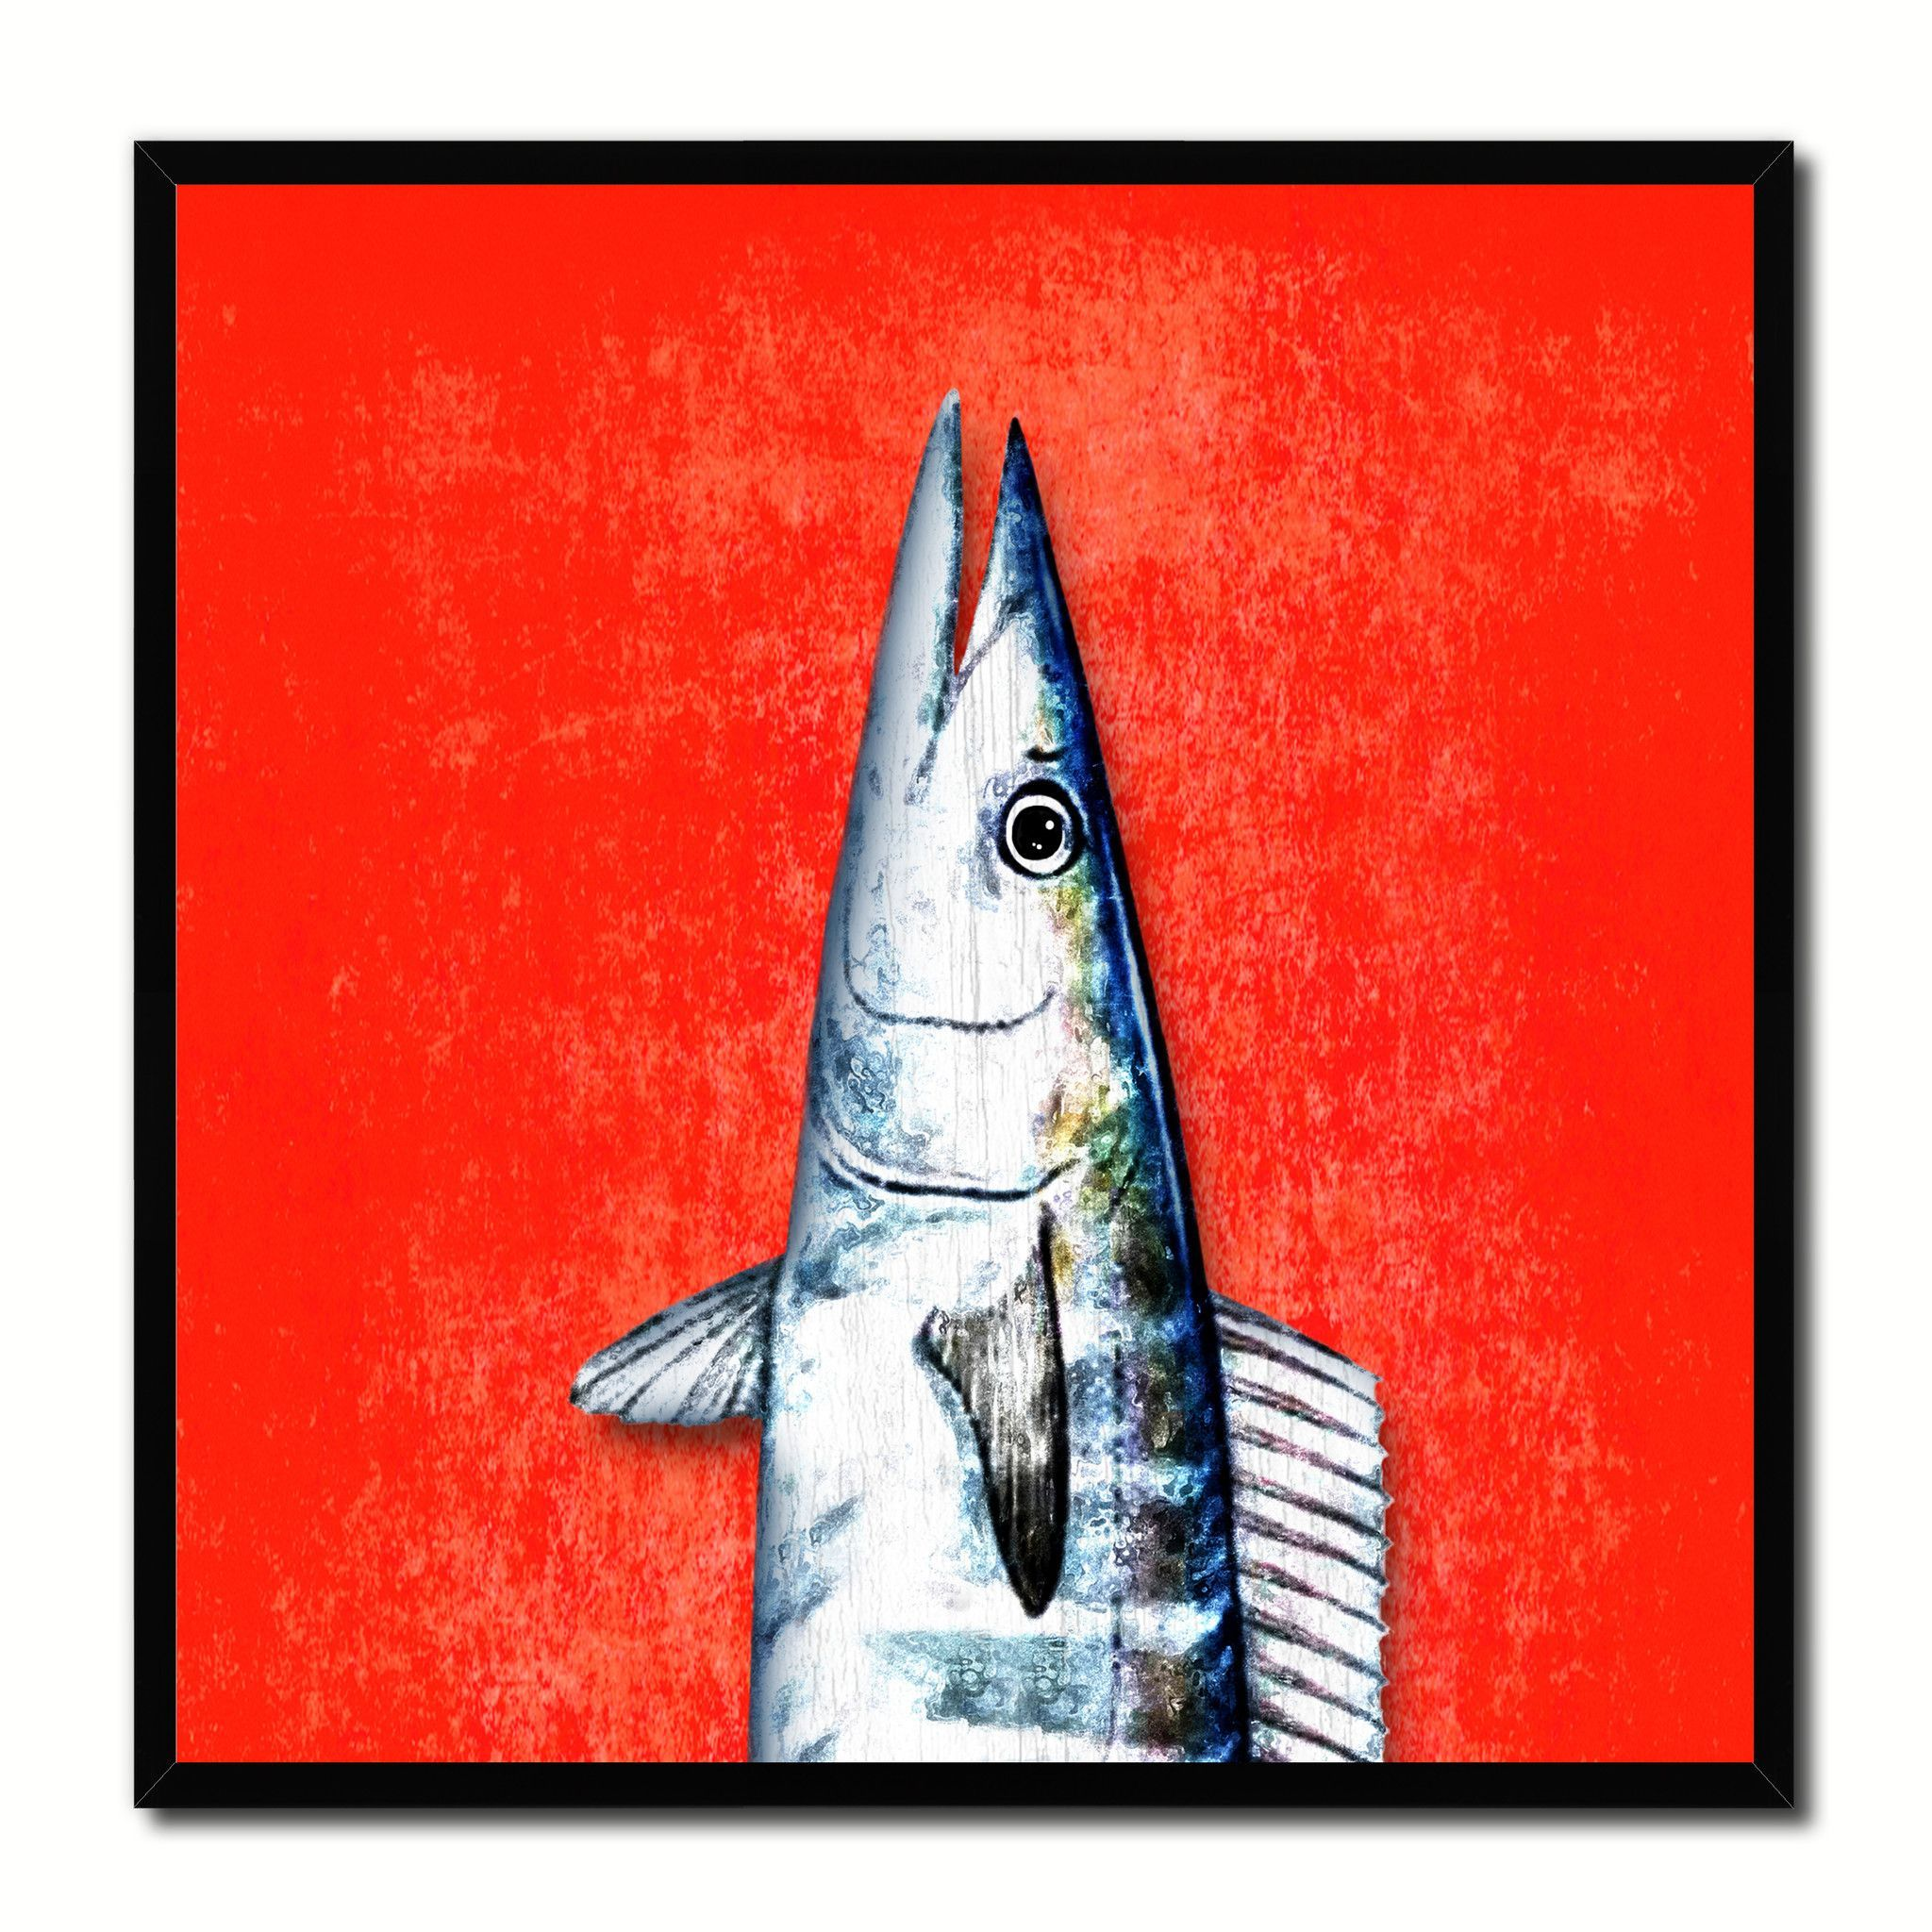 Nautical gifts for the home - Wahoo Fish Head Art Red Canvas Print Picture Frame Wall Home Decor Nautical Fishing Gifts